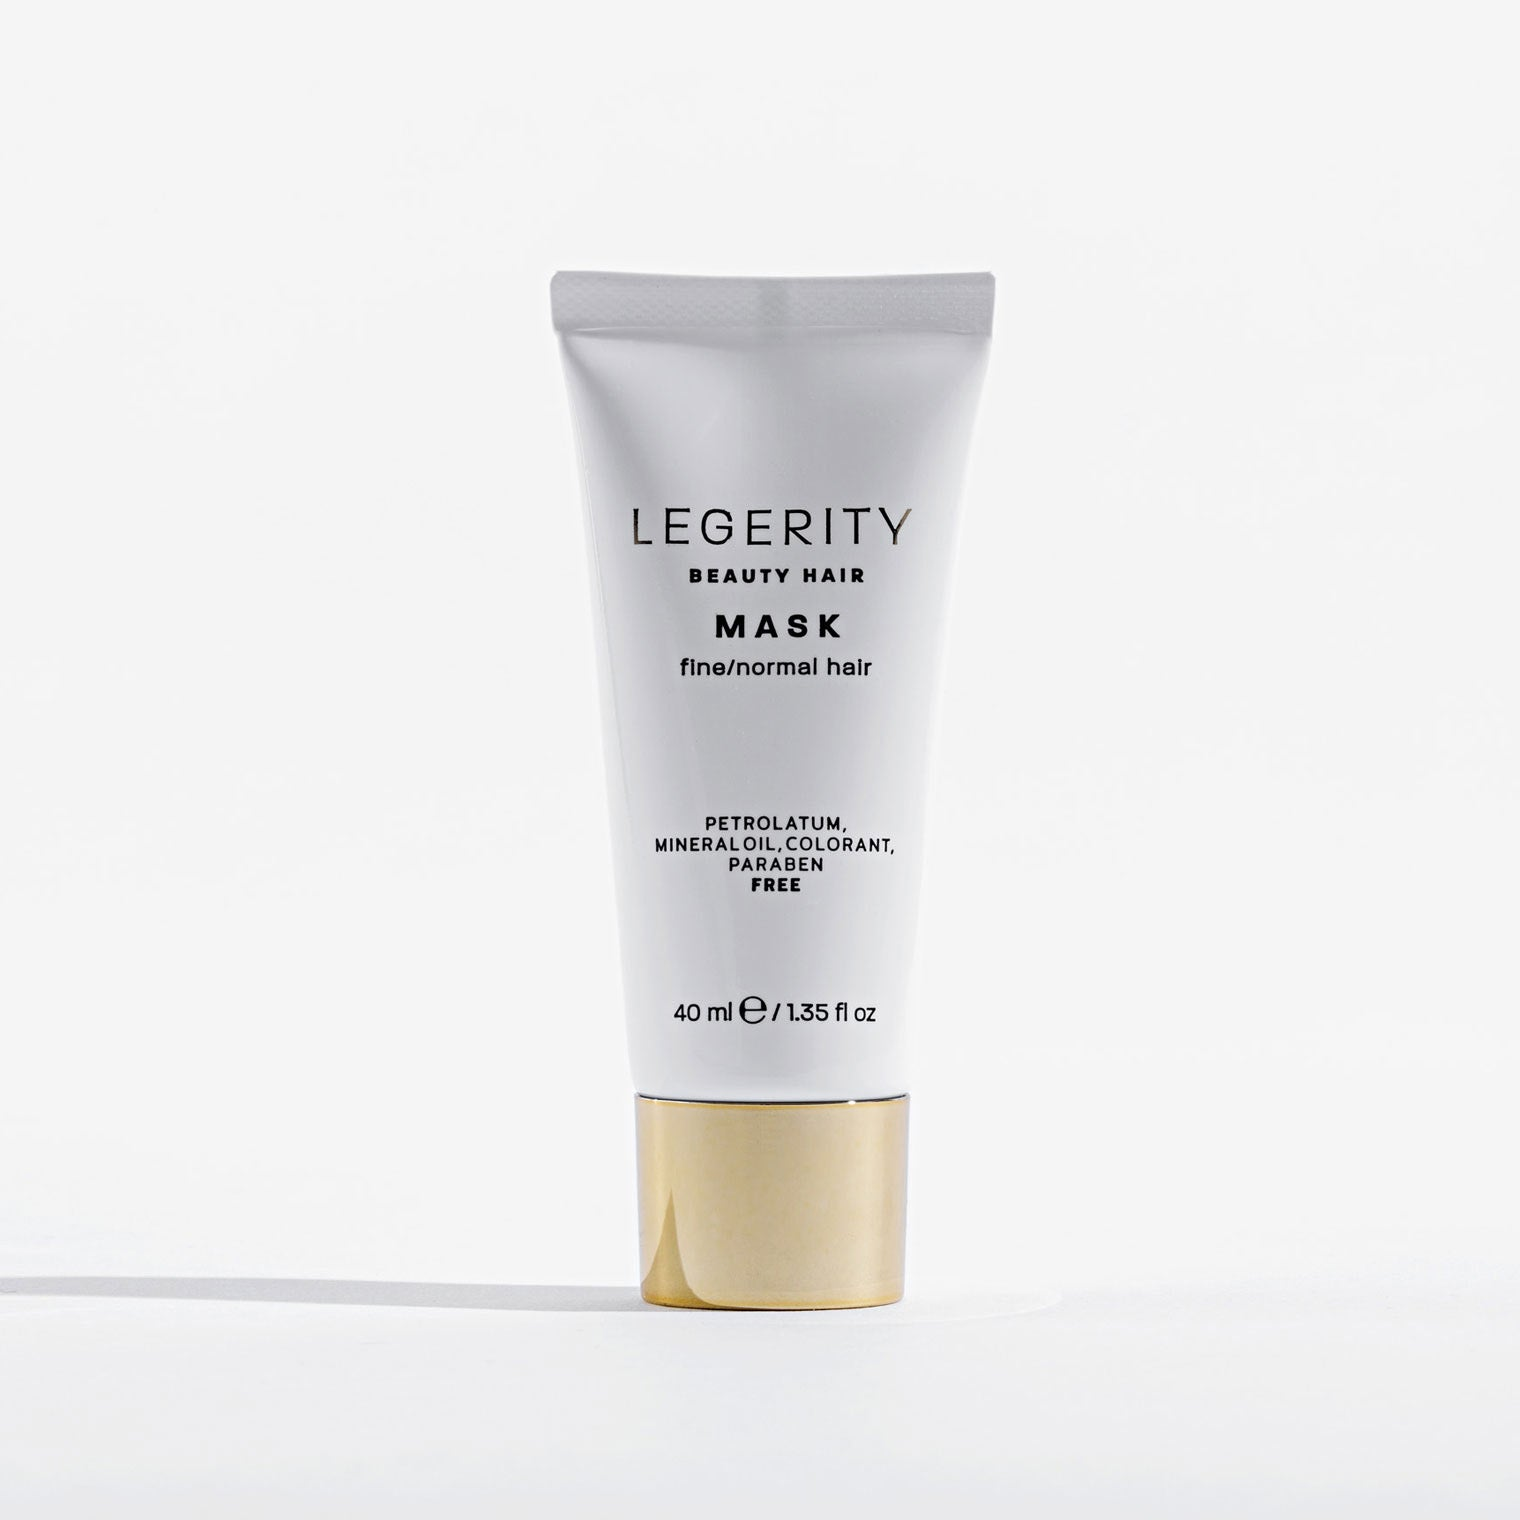 Legerity Beauty Hair Mask 40ml